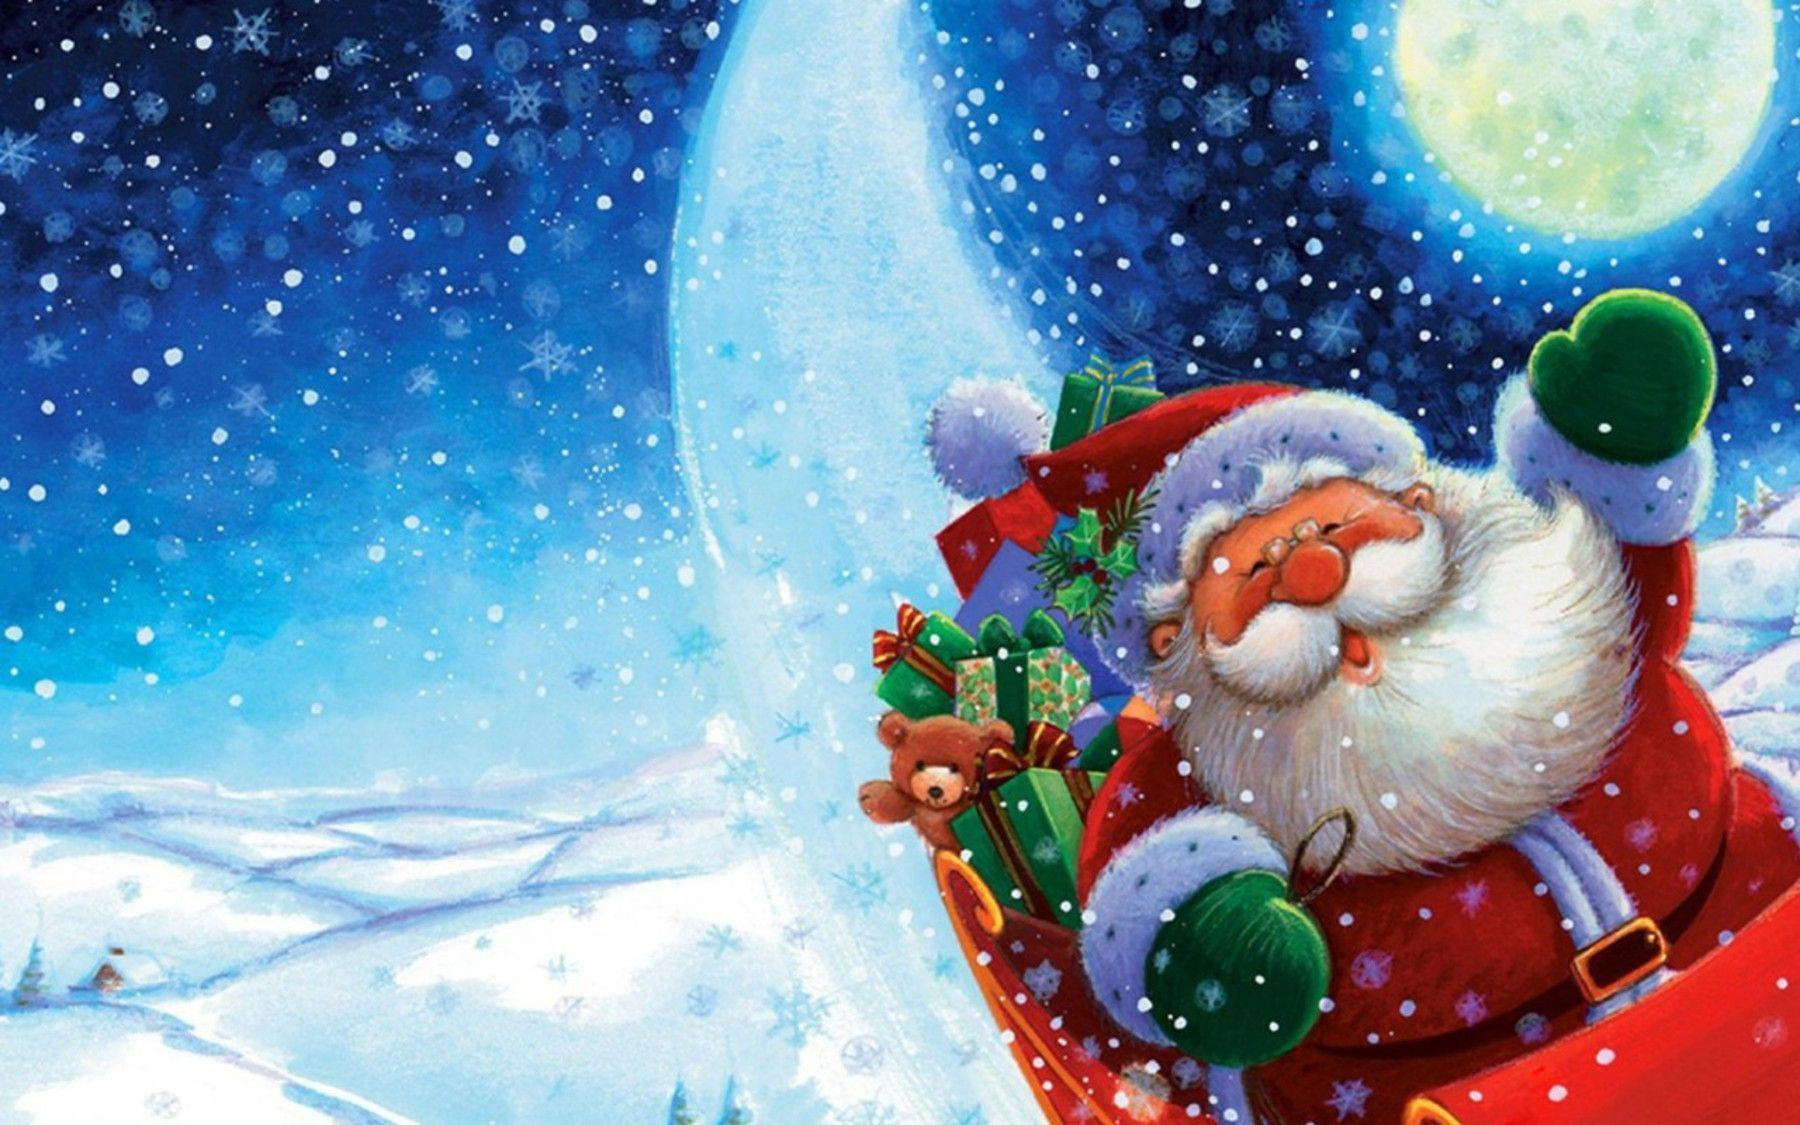 Beautiful Christmas Santa Claus HD Wallpapers Free Download Pictures Desktop Backgrounds Funny Photos For Event